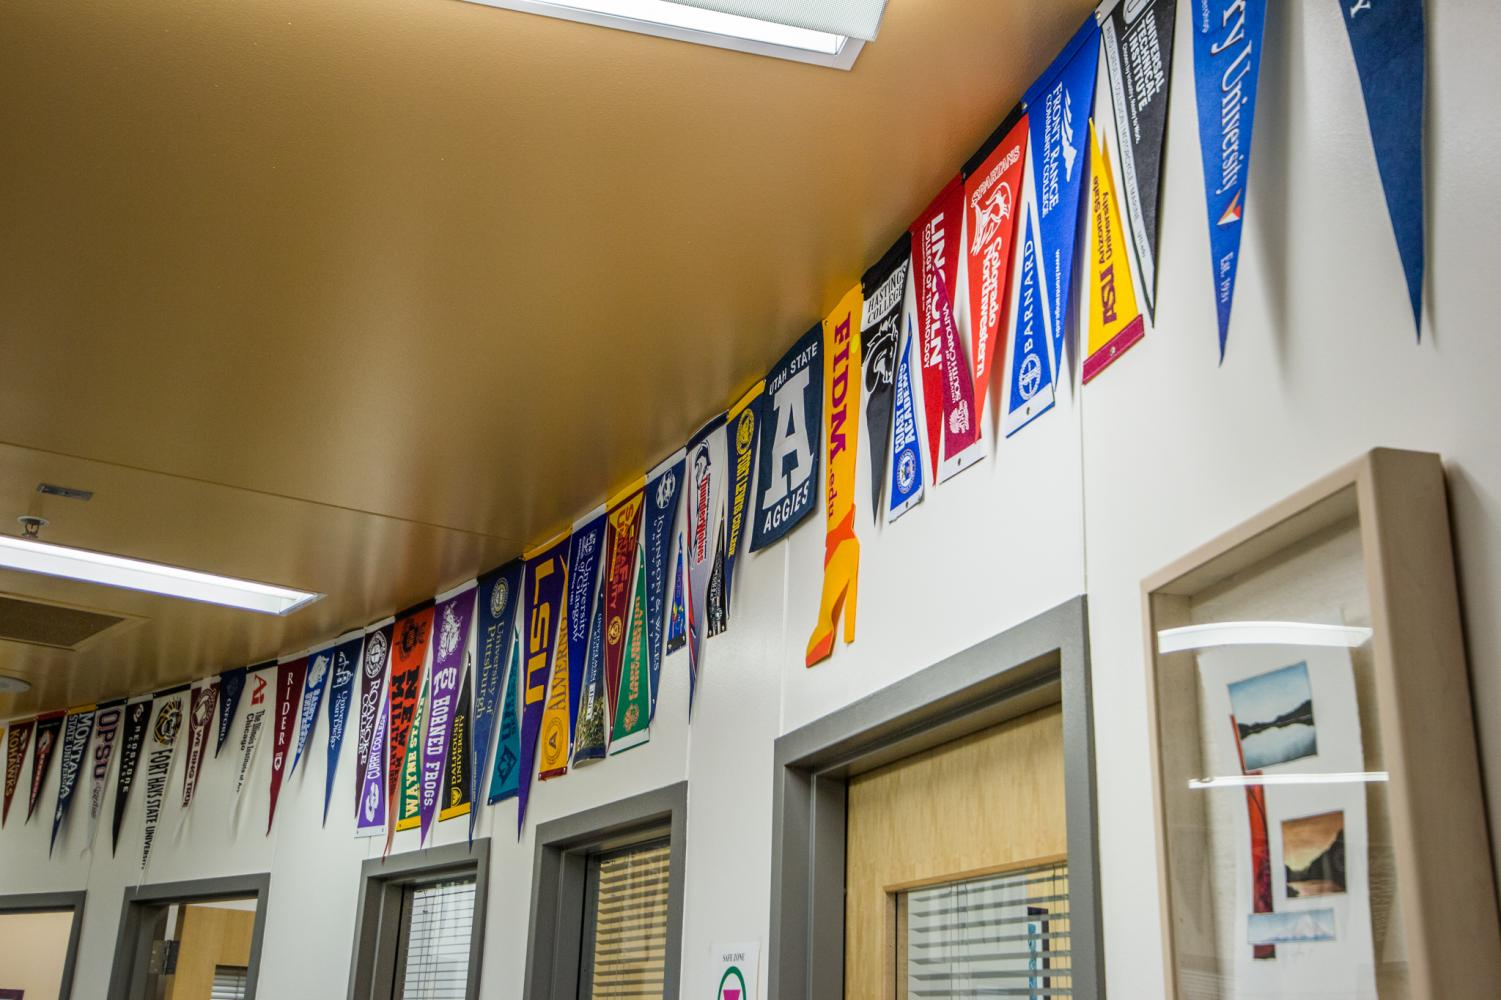 Banners from colleges who have visited MHS, or have been attended by MHS staff members.